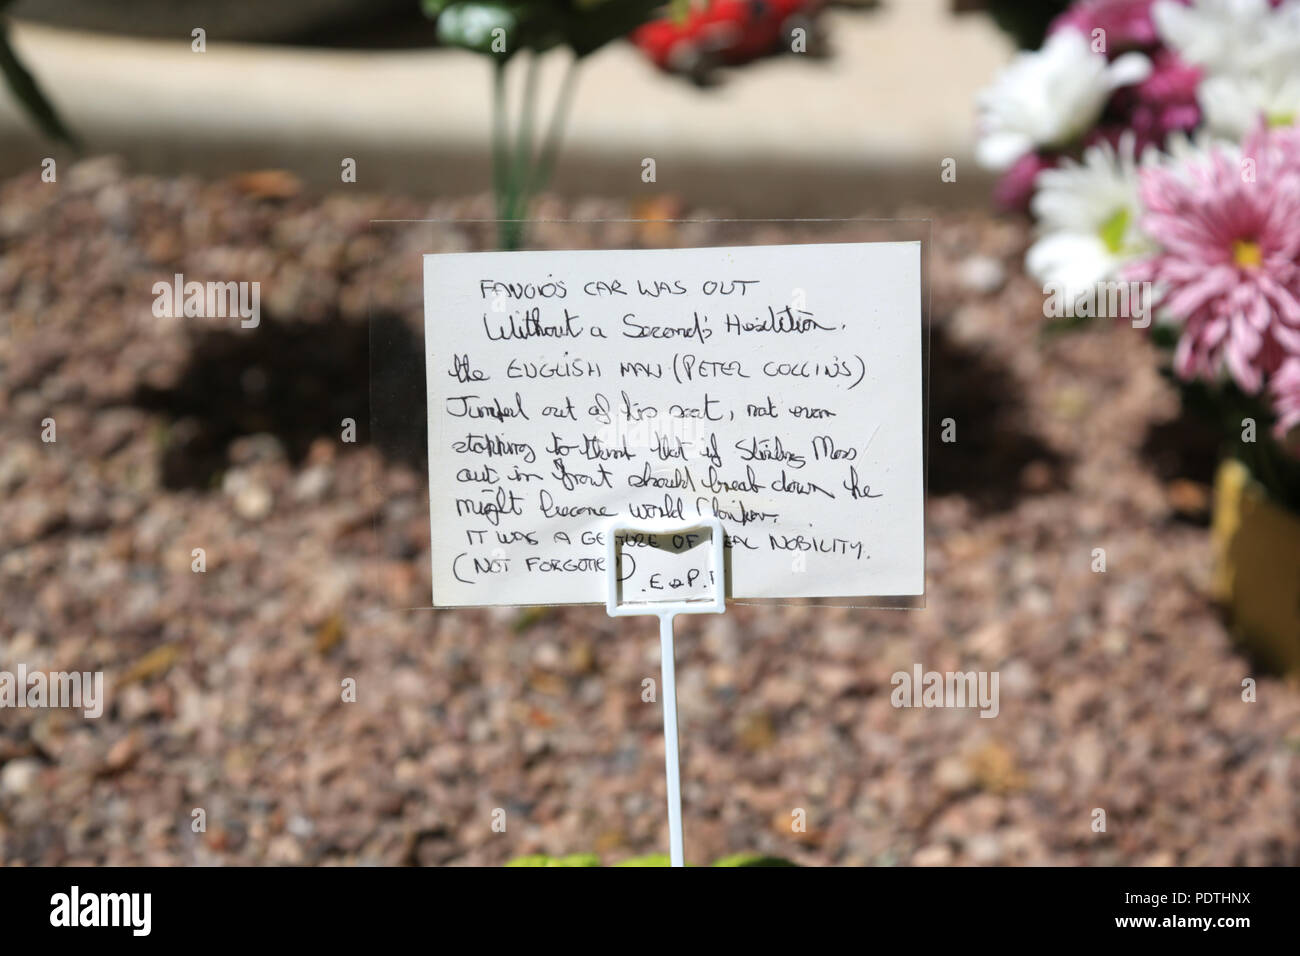 Hand written message left on the grave of British racing driver Peter Collins on the 60th anniversary of his death. - Stock Image